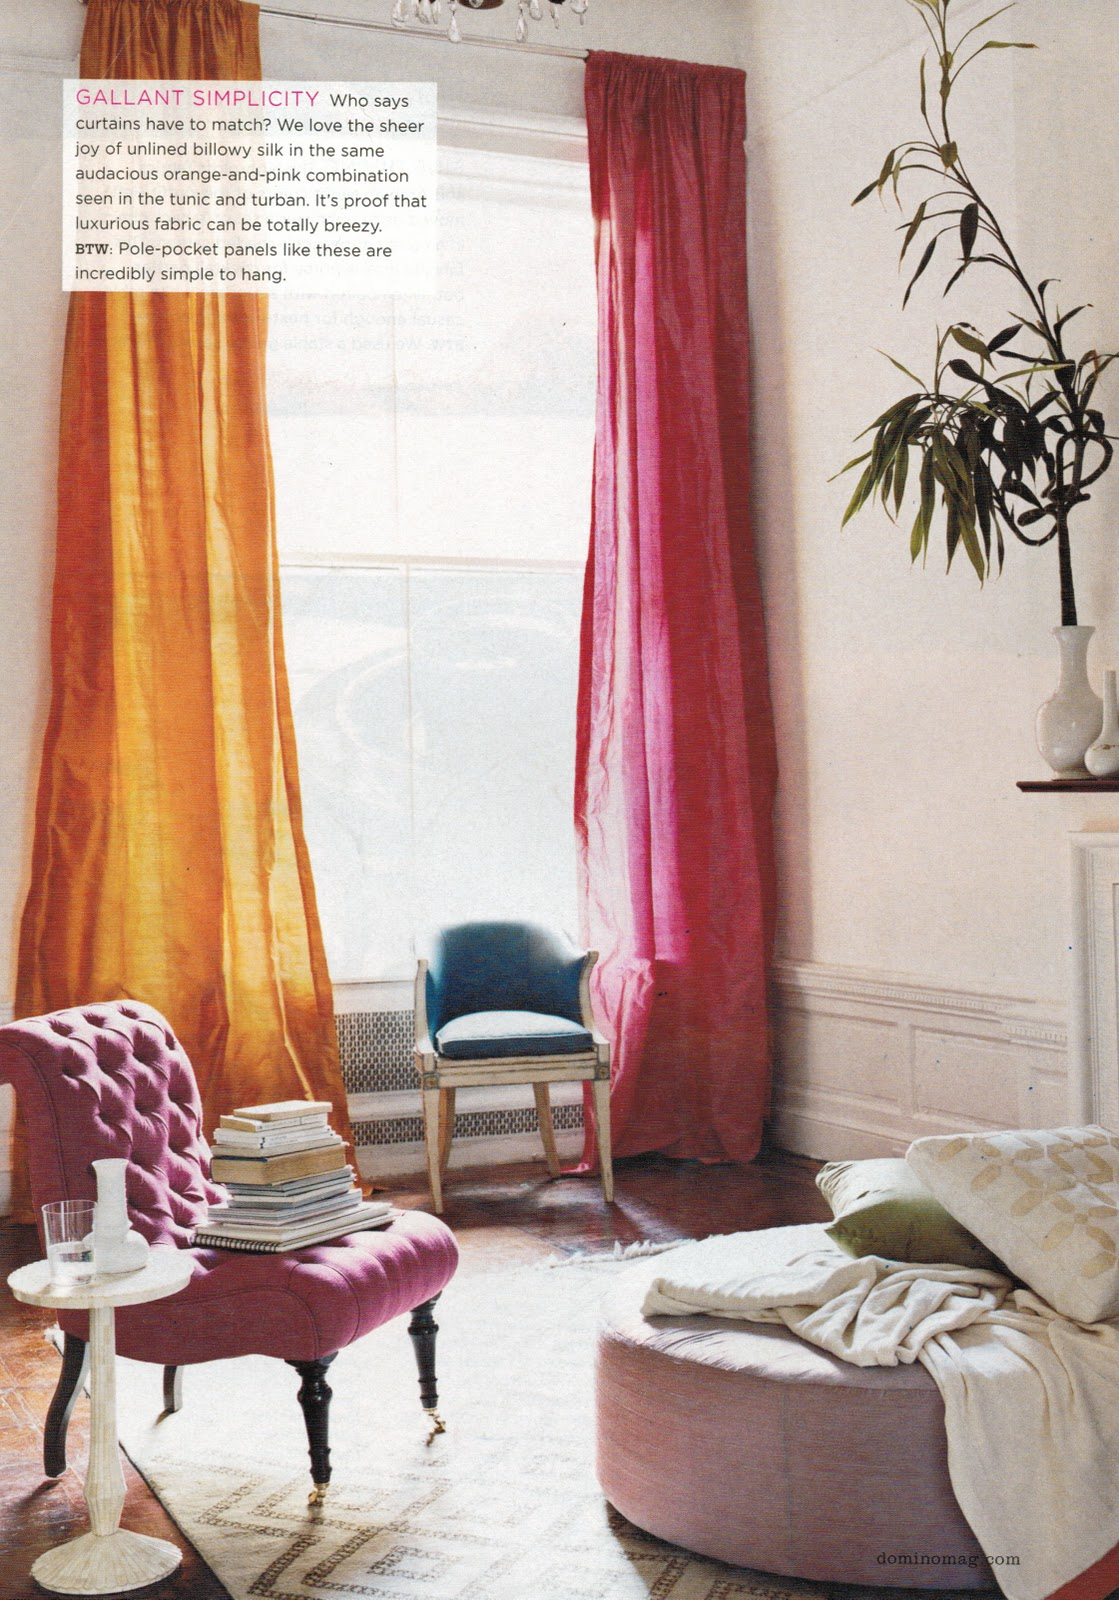 Powerful Verticals Are Lightened And Brightened By Statement Making Sheer Curtains That Gleam In The Sunlight Playing With Colors Can Be A Way To Add